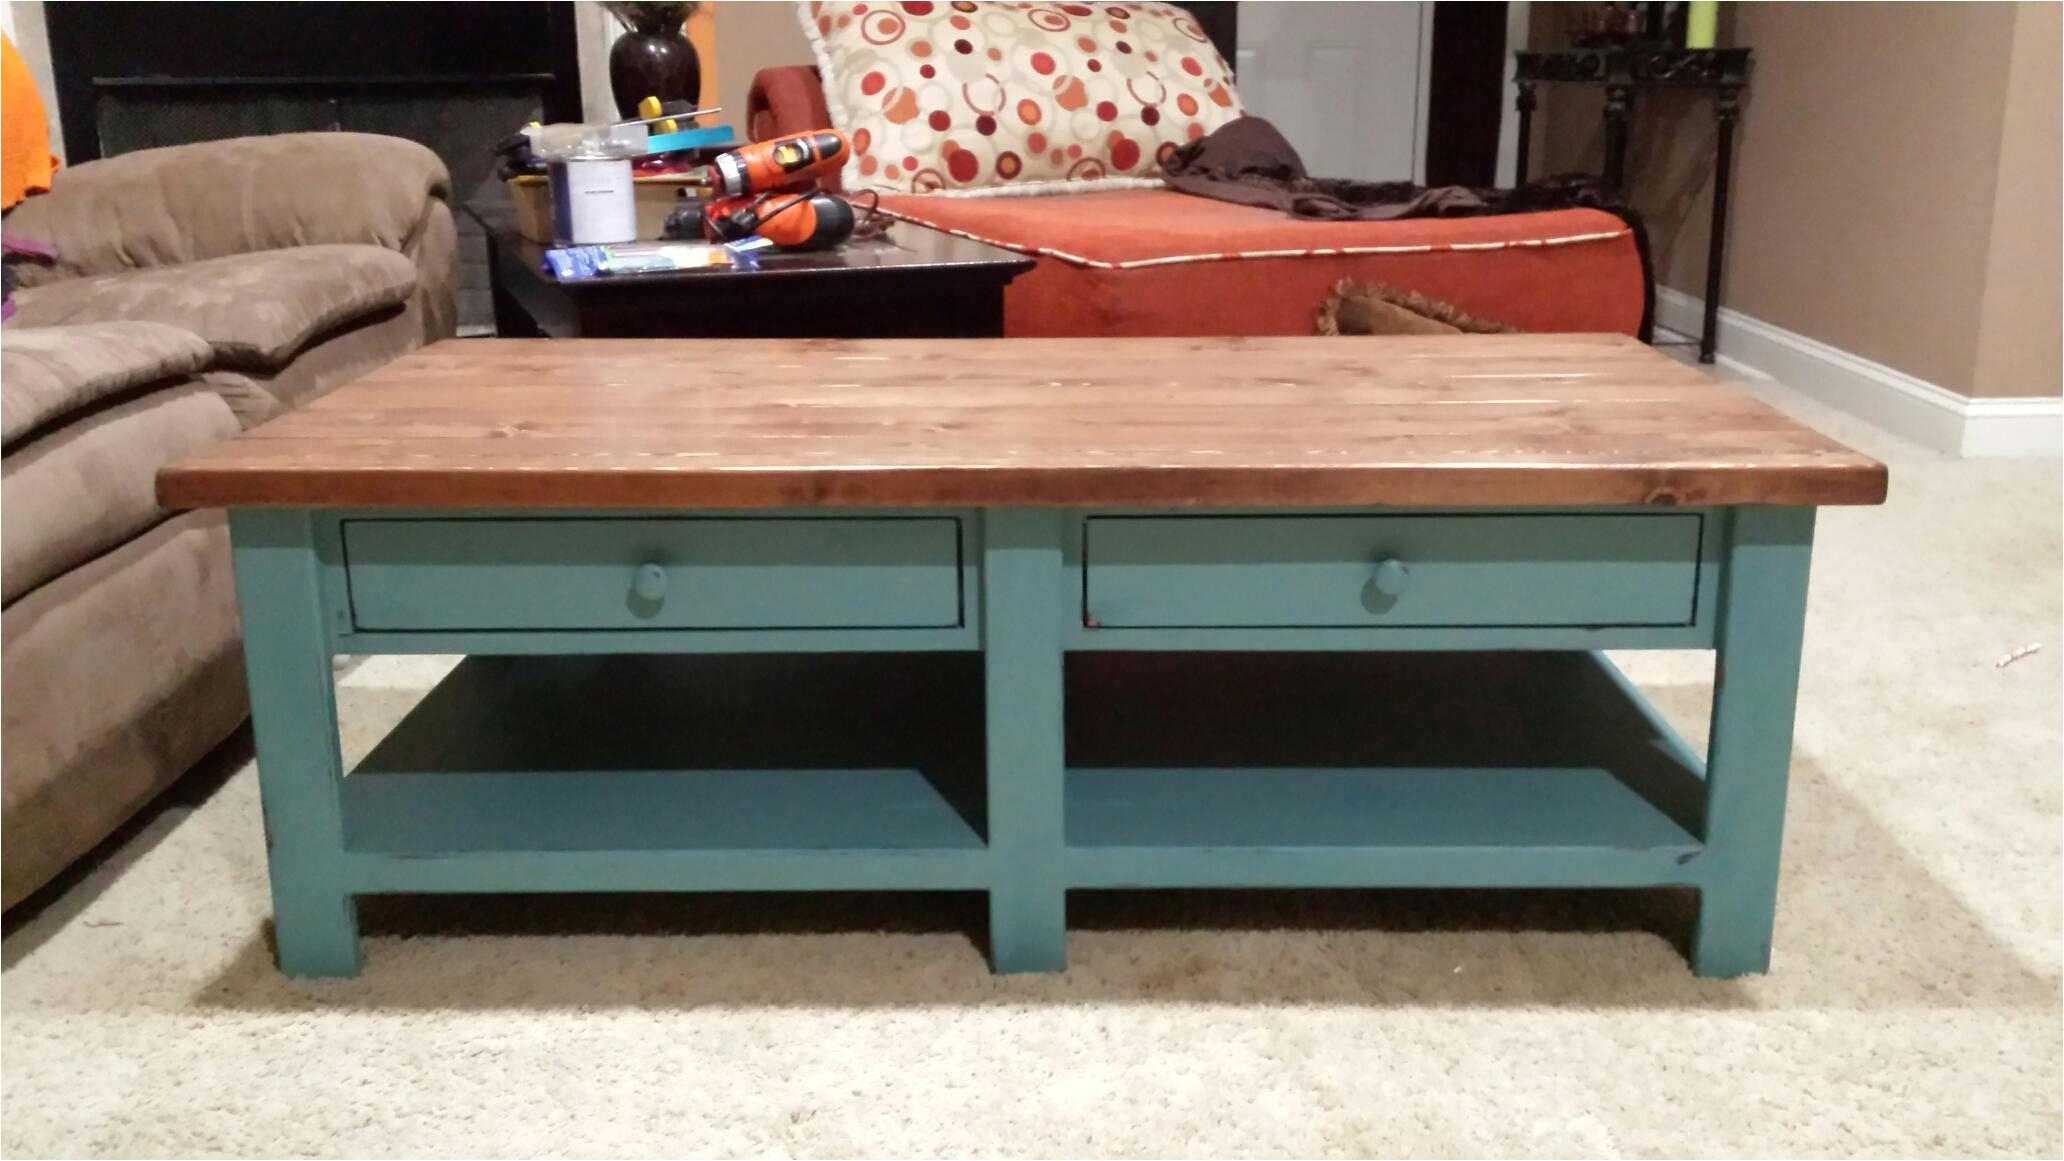 a coffee table with two drawers and a lower bench